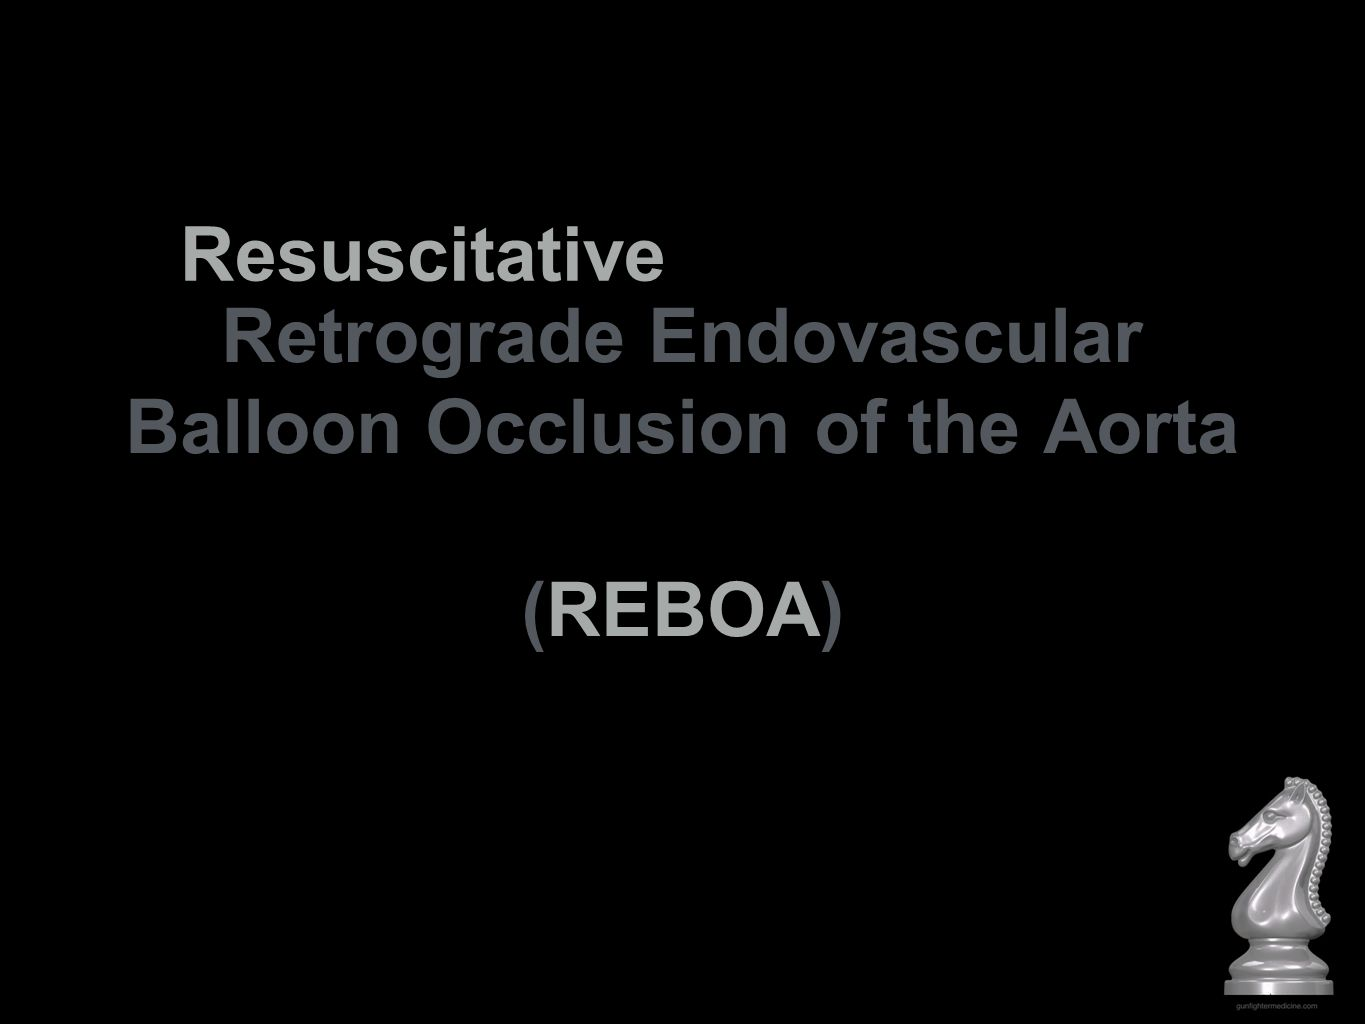 REMOVAL OF THE BALLOON AND SHEATH After REBOA is no longer required, the deflated balloon and wire may be removed from the sheath which should then be flushed.